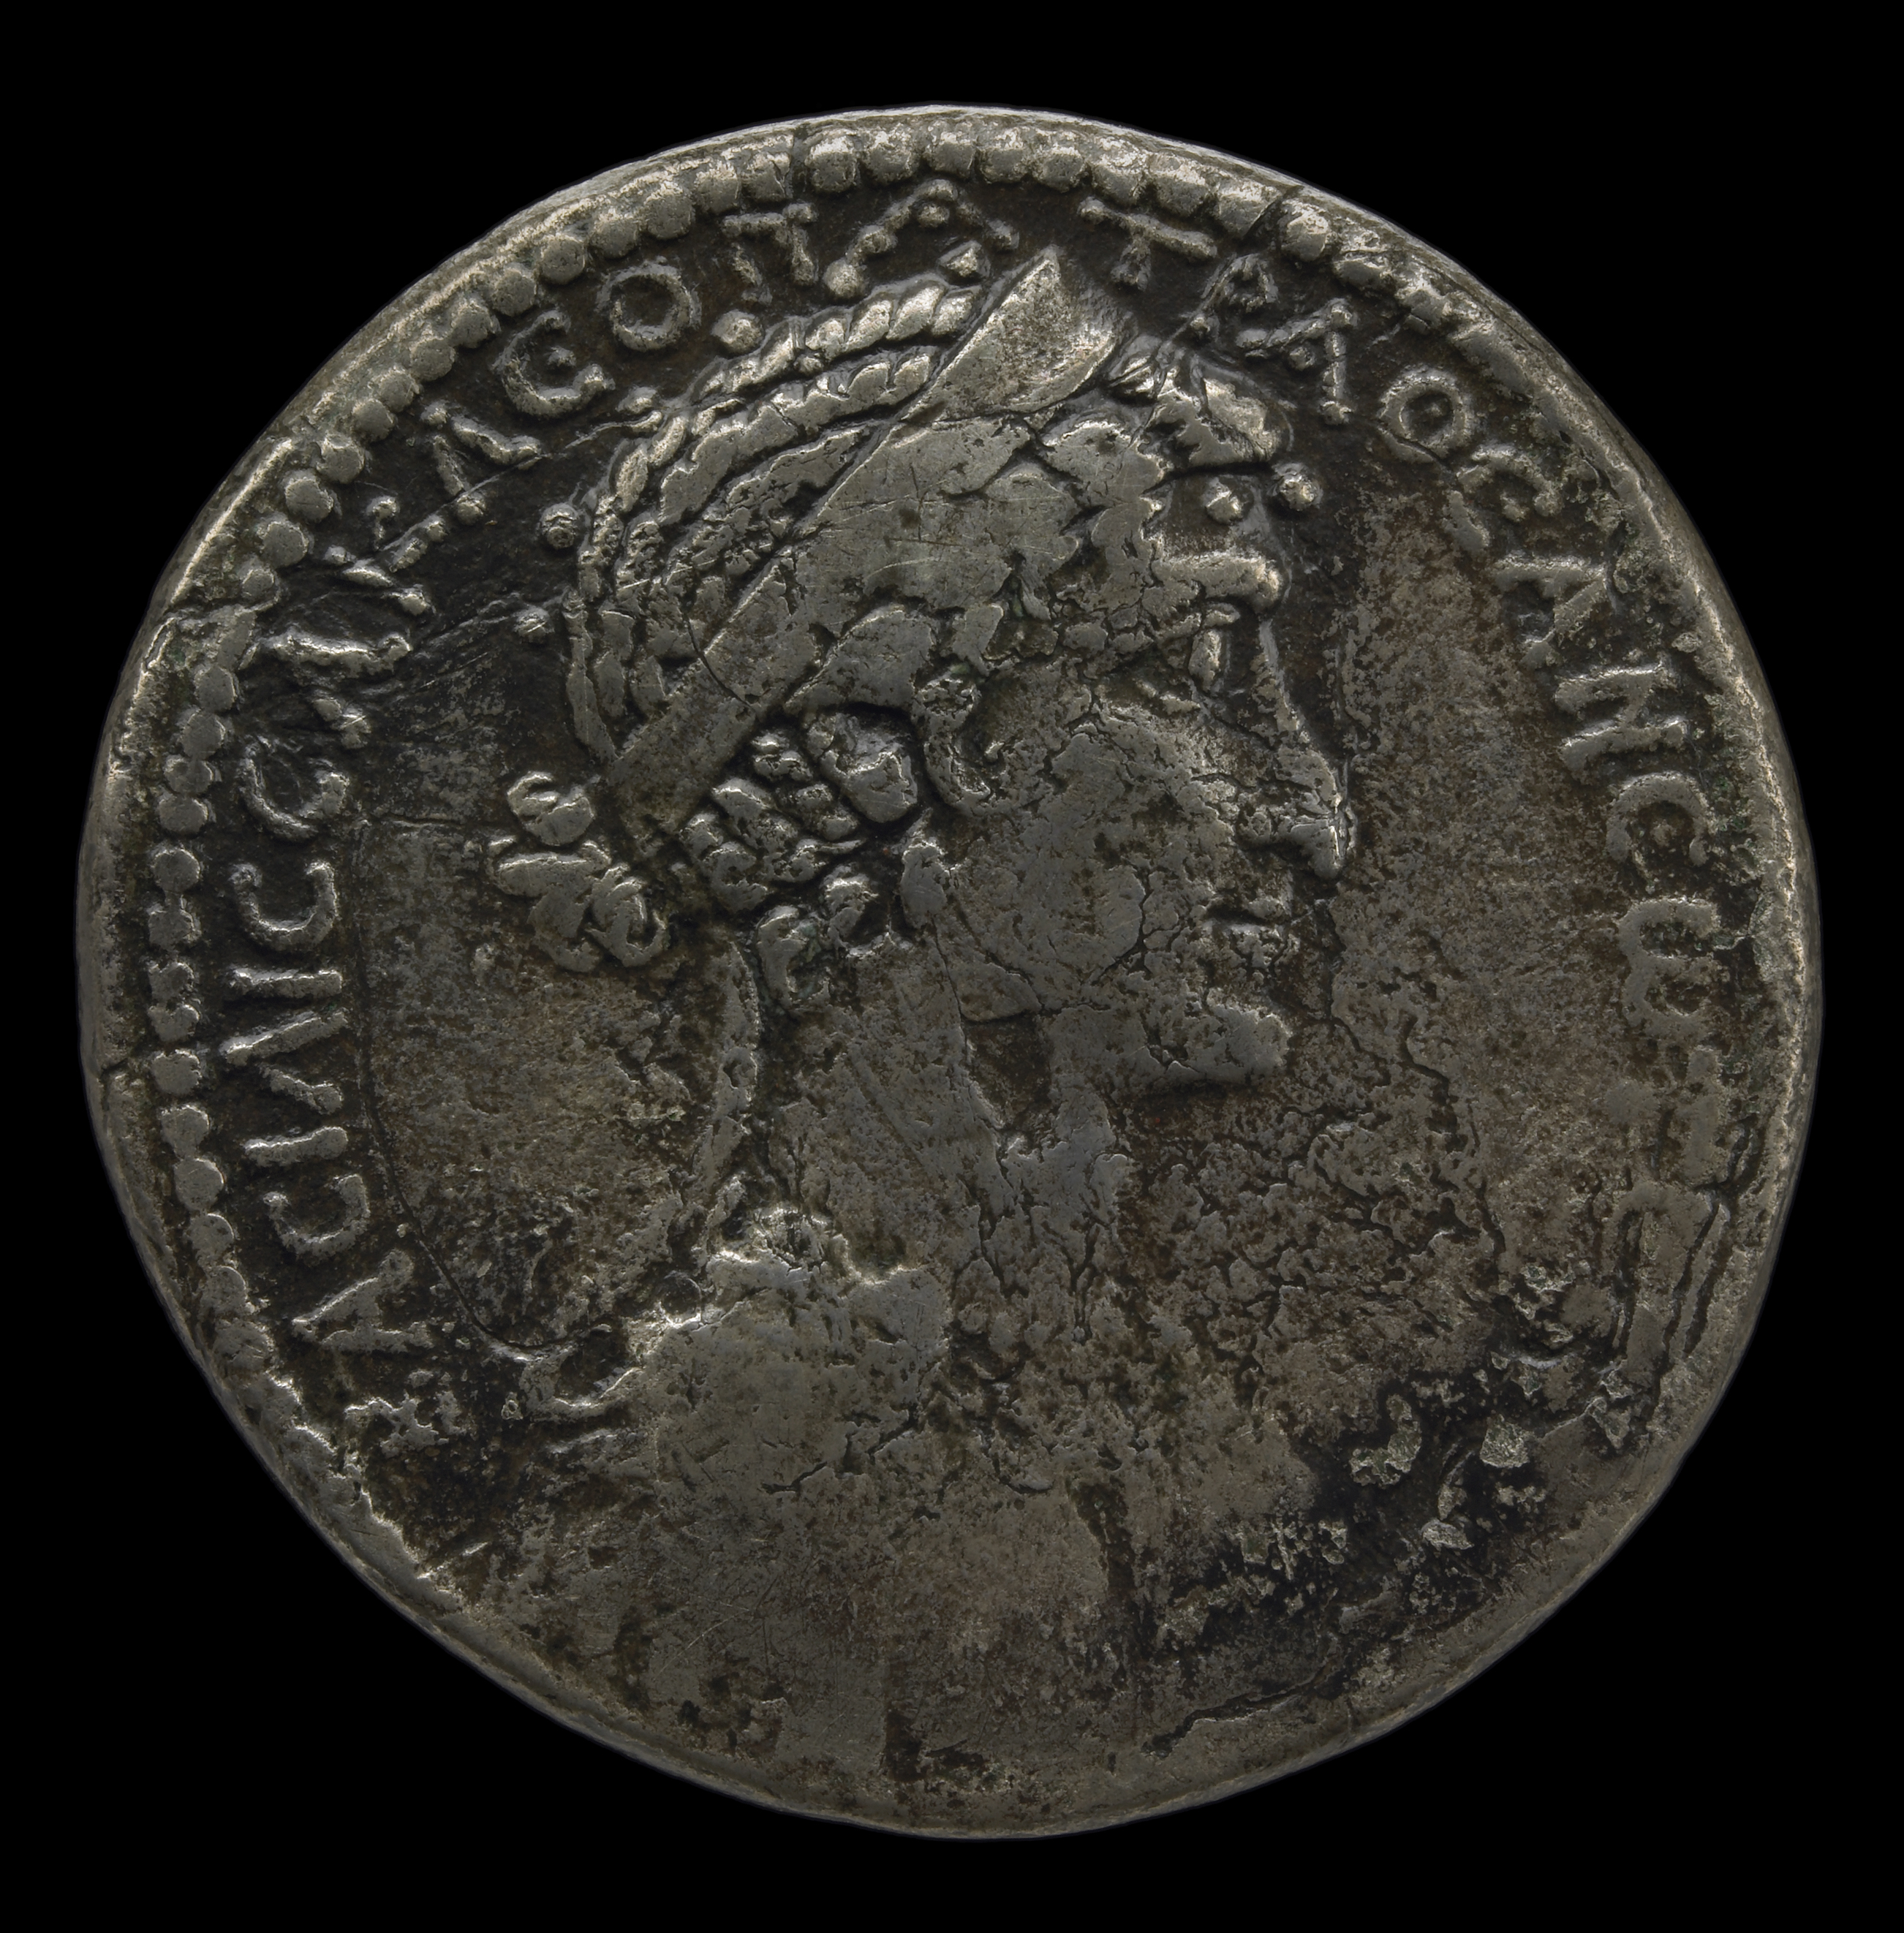 Silver tetradrachm coin of Mark Antony and Cleopatra. Minted in Syria, c. 36 BC.